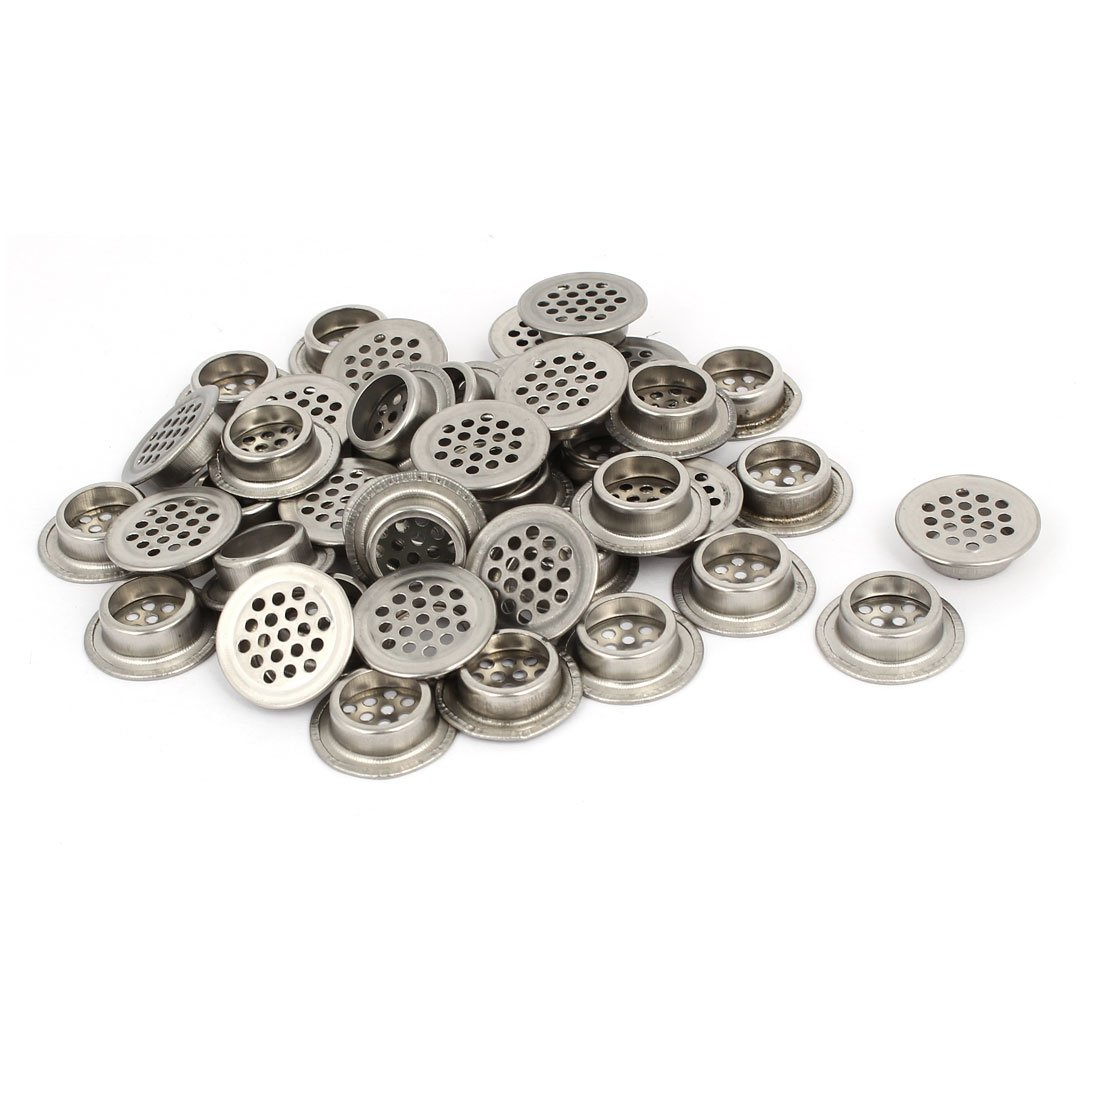 uxcell 19mm Bottom Dia Stainless Steel Round Shaped Mesh Hole Air Vent Louver 40pcs